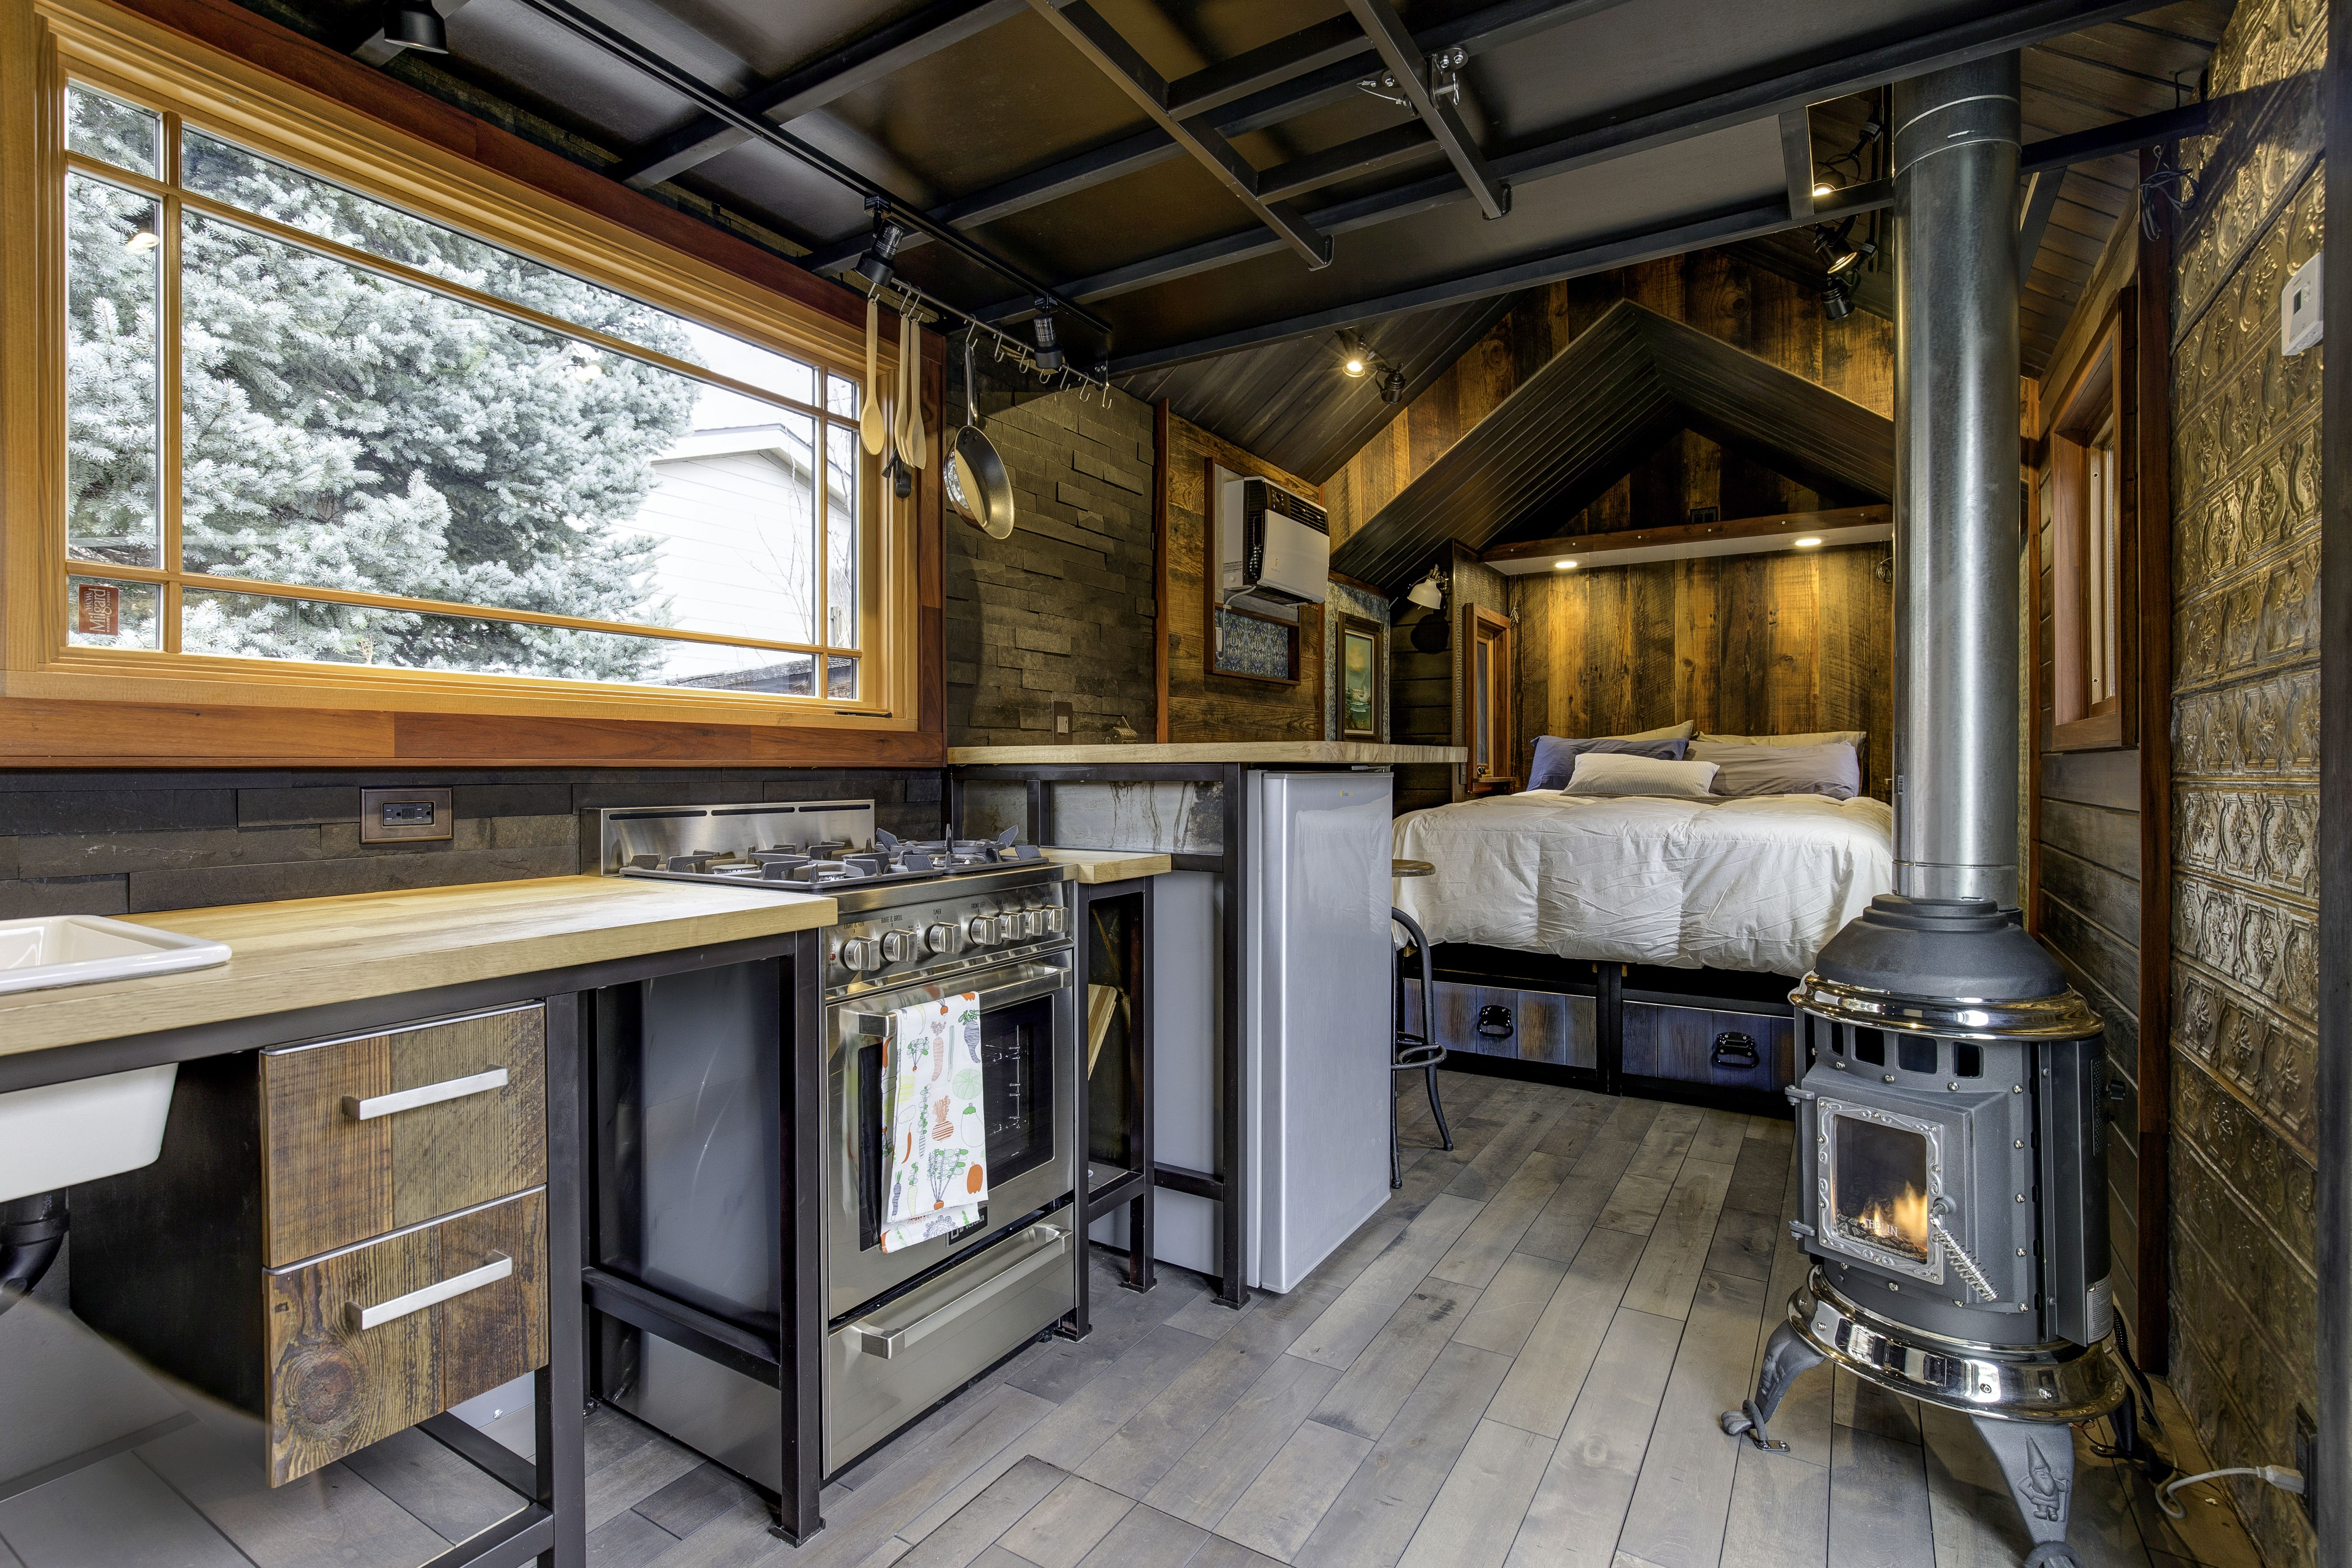 Earth and Sky Palace Luxurious Single Level Tiny House Features